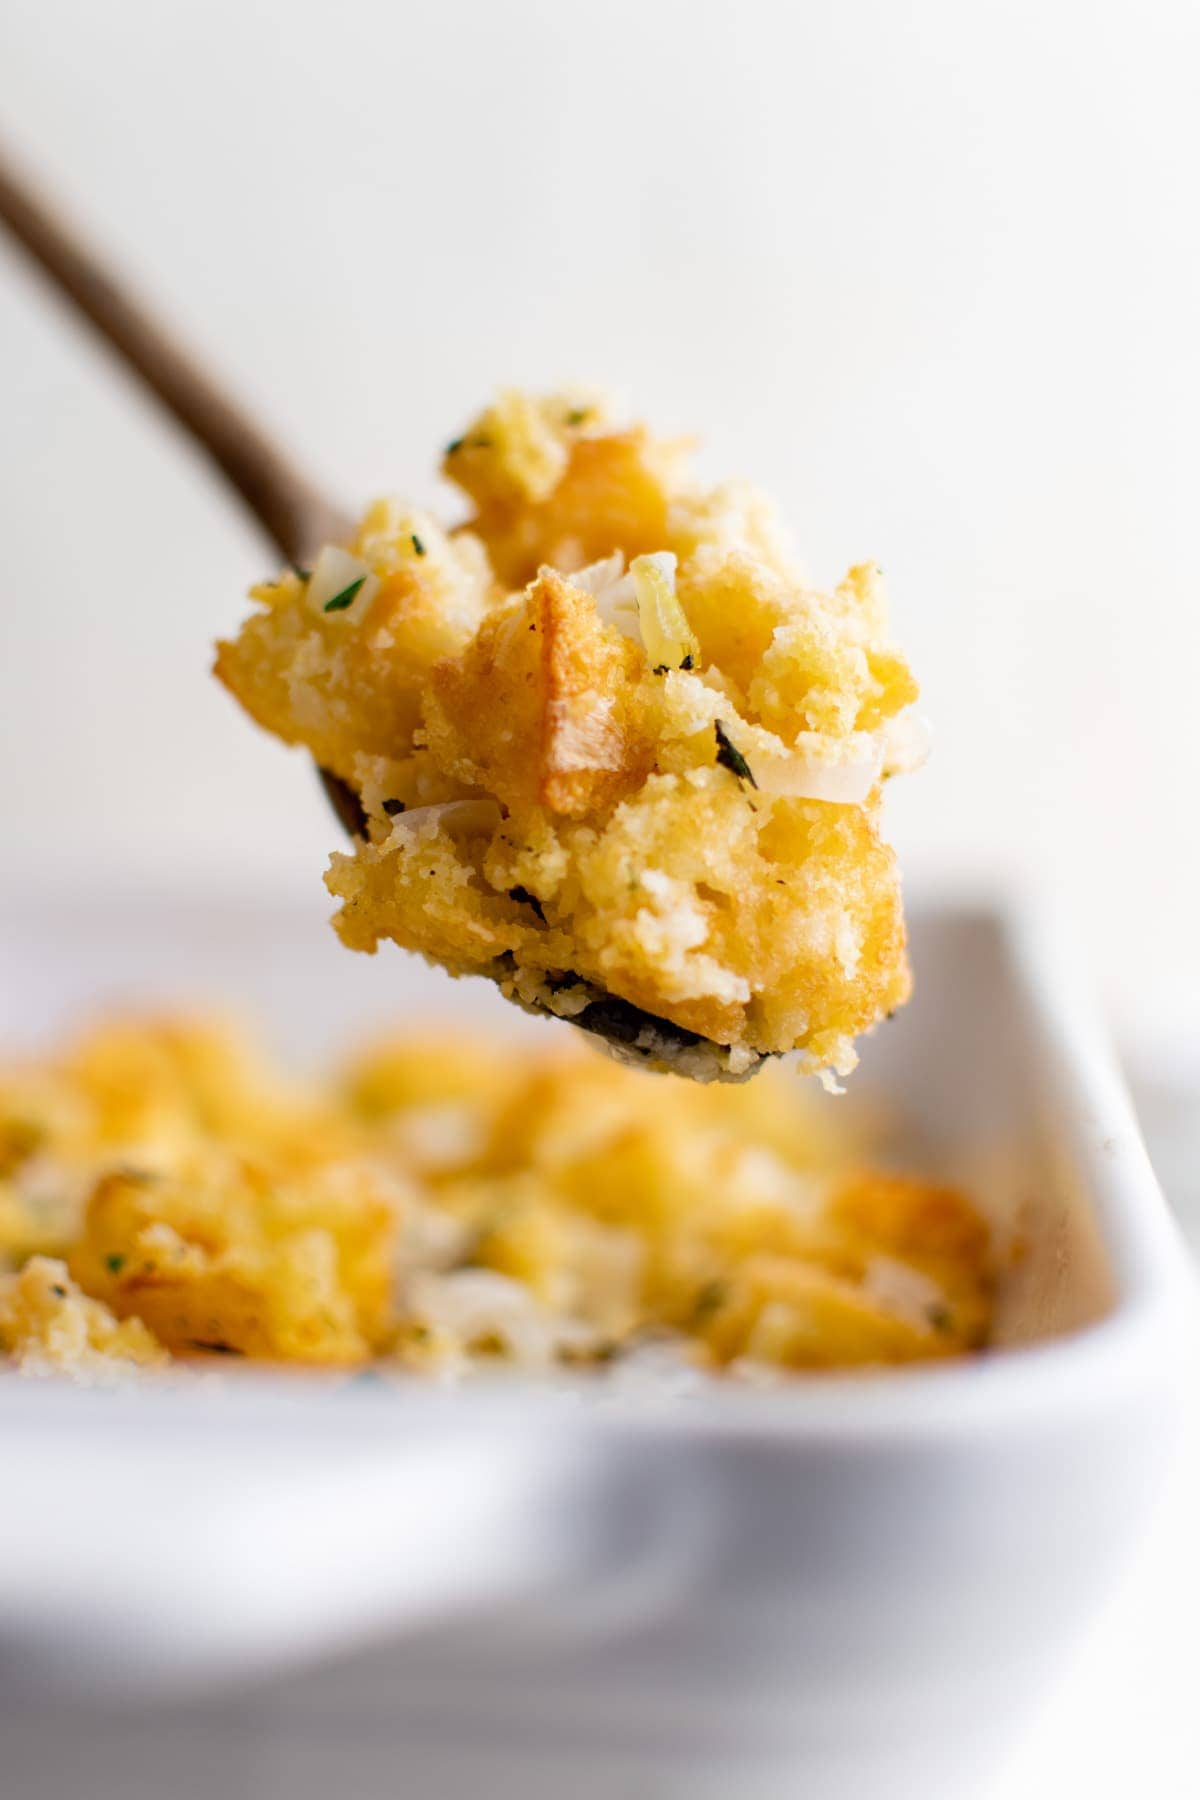 stuffing made from cornbread on a spoon